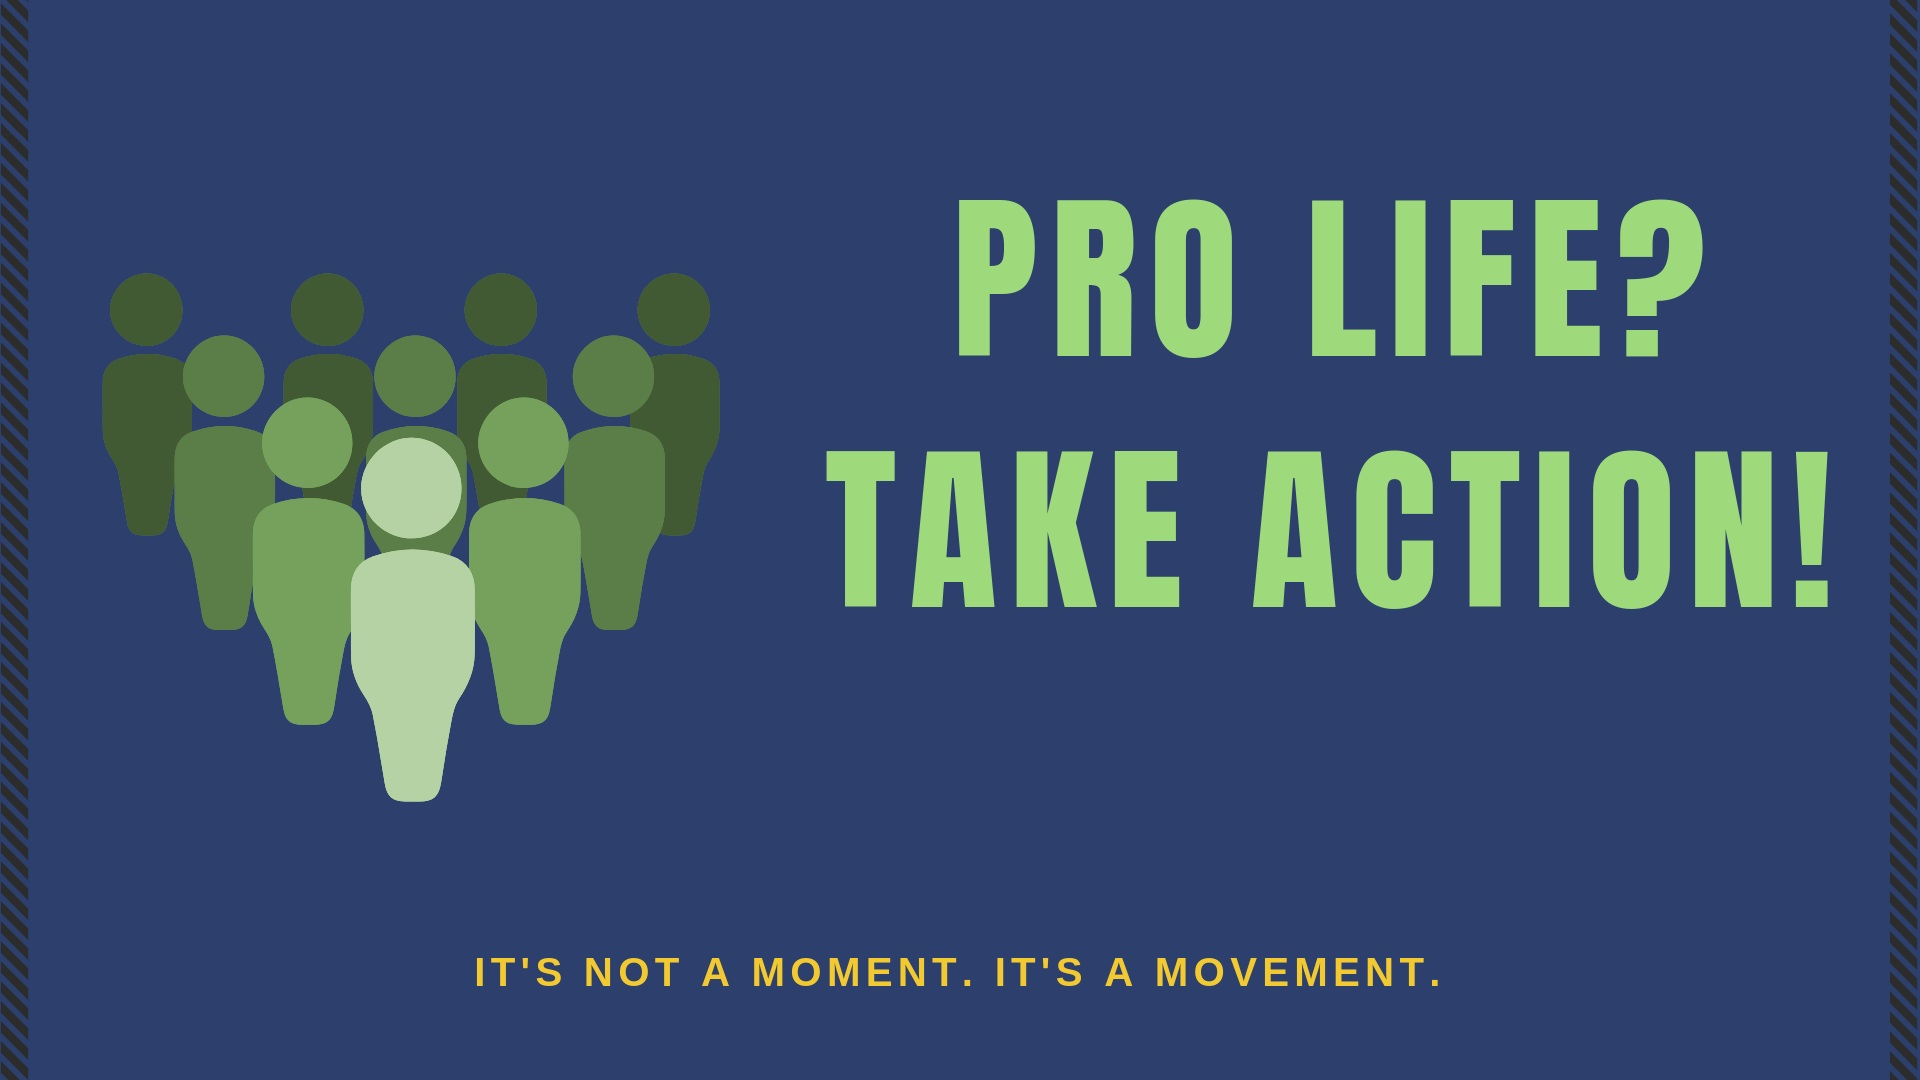 Pro Life_ Take Action!.png